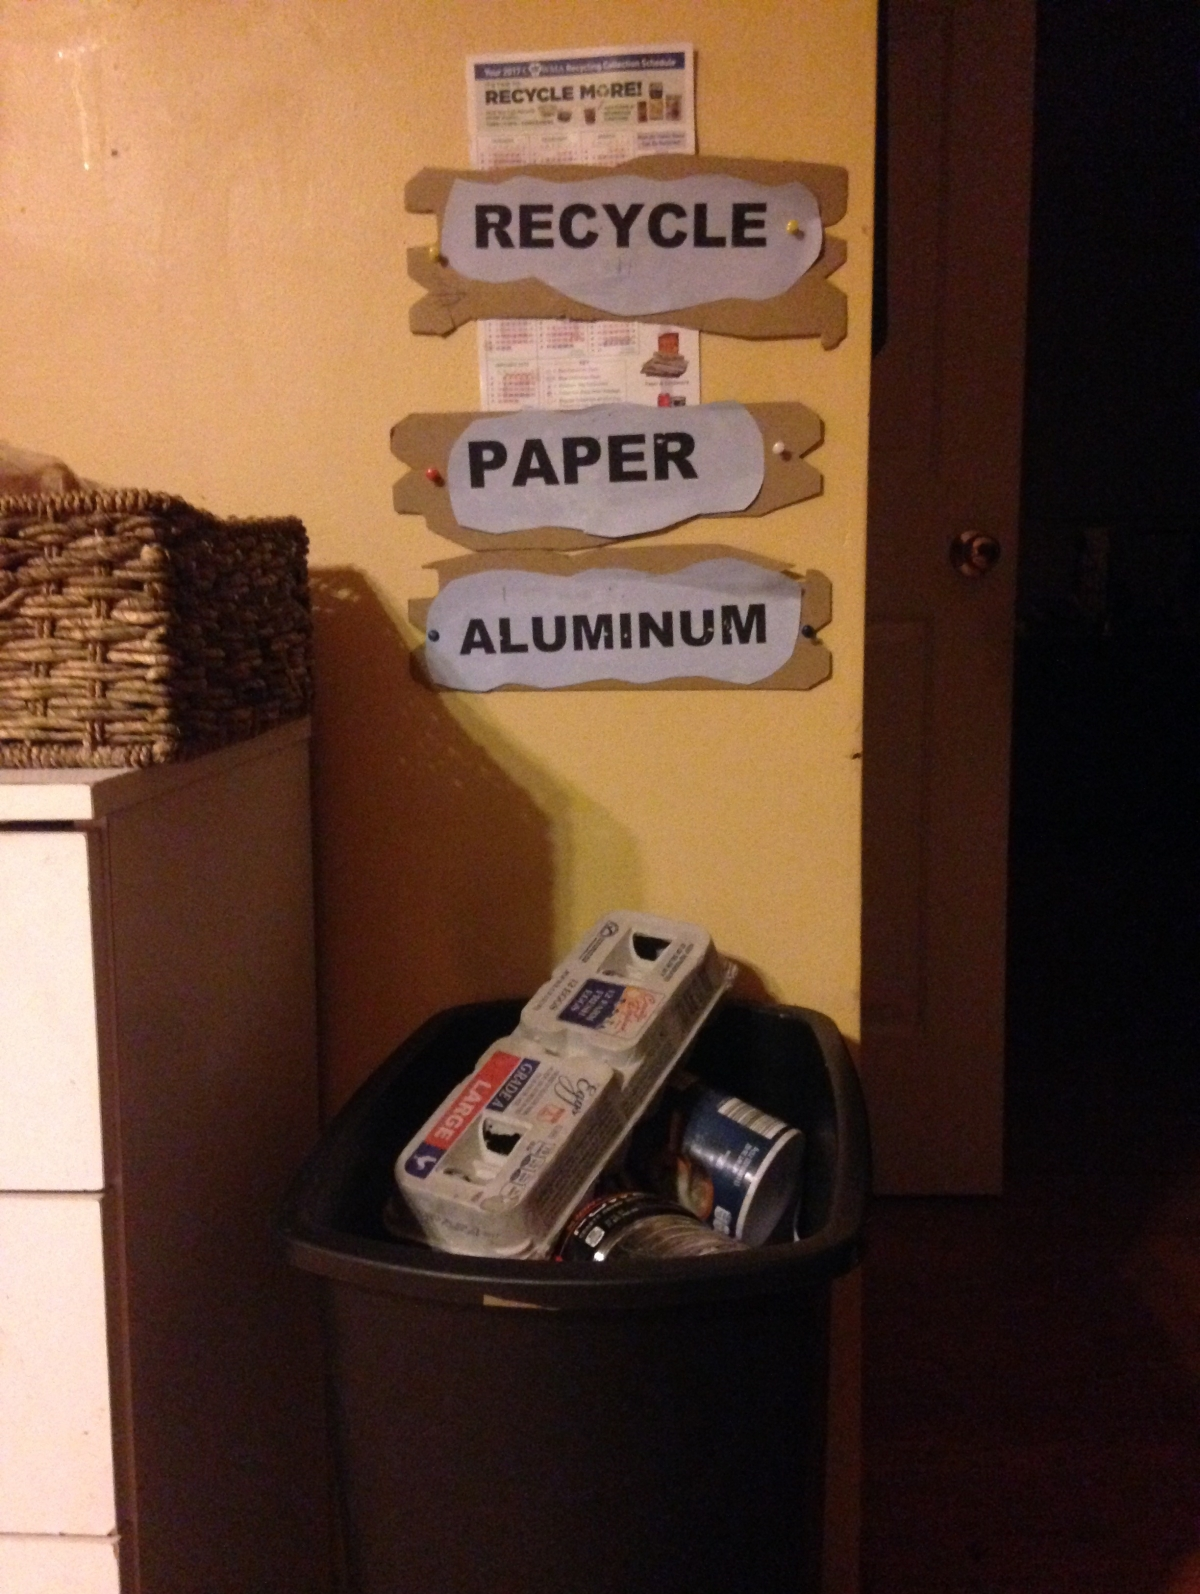 3 Spiritual Things I Learned From an (Almost) Recycled EggCarton